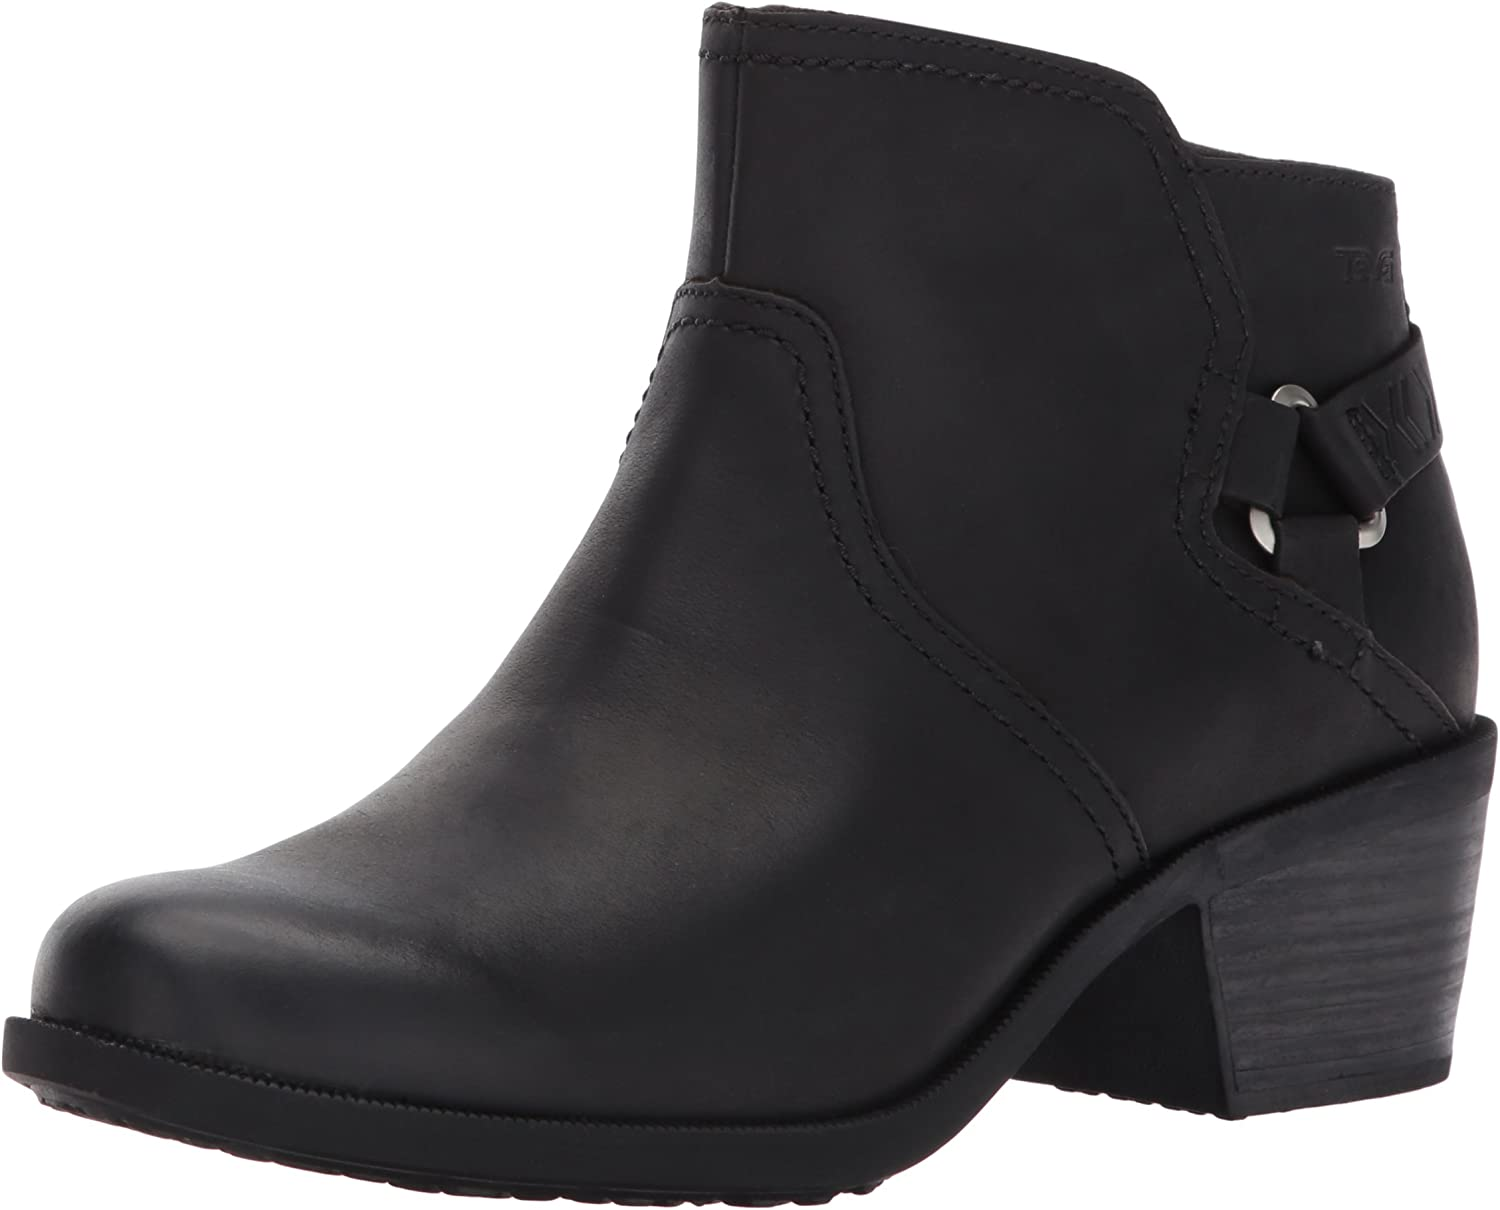 Teva Women's W Foxy Waterproof Boot